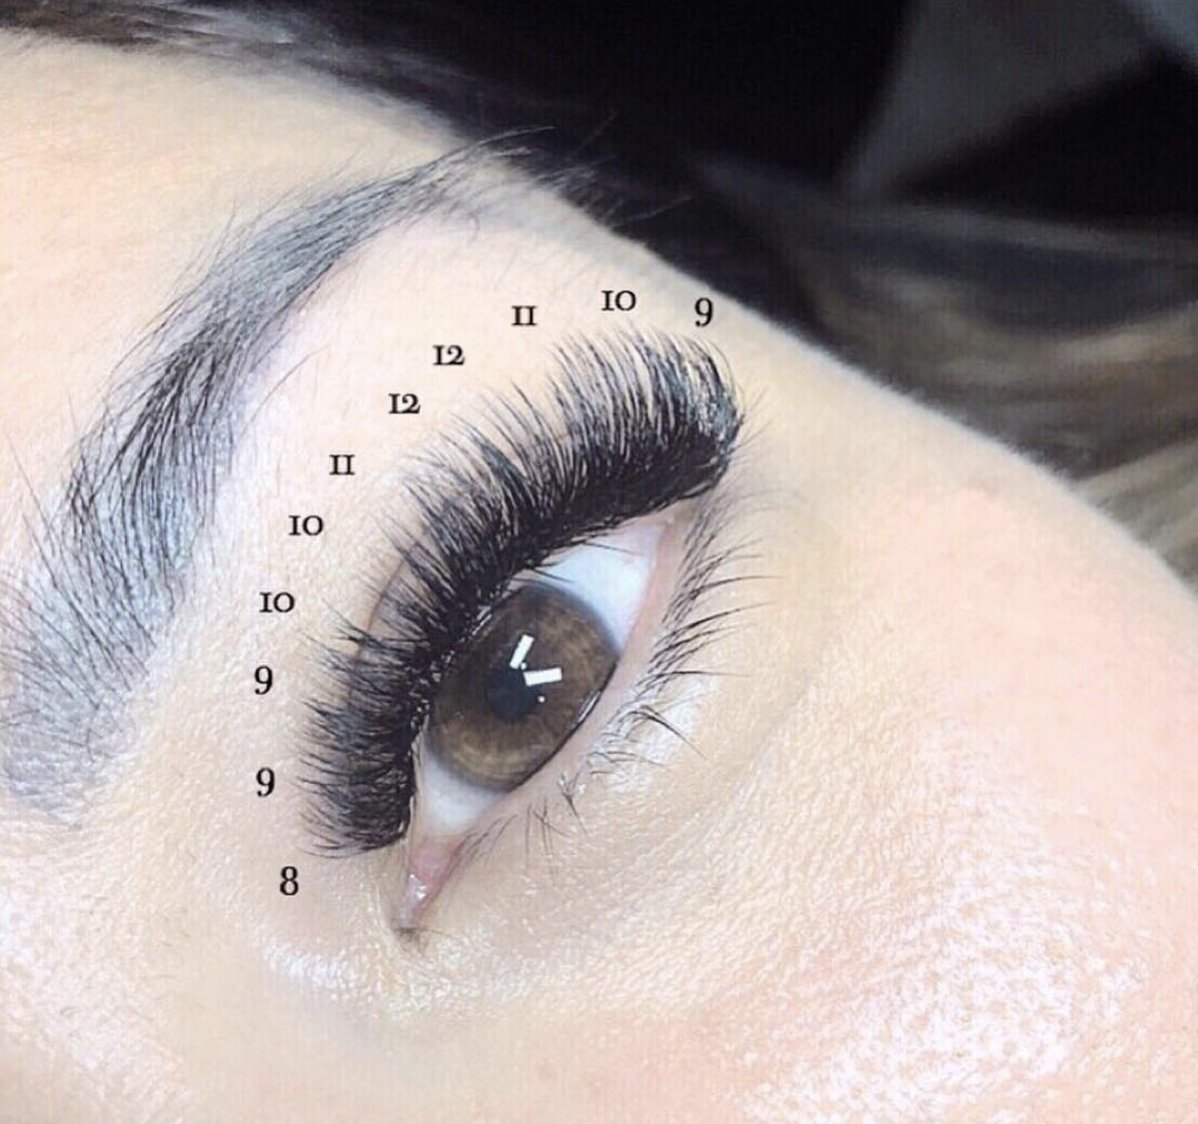 Mapping saves time and creates uniform sets. // Do you map your sets? If so, what's your favorite style? Let us know in the comments! // This beautiful set was done by @savannah_myaddiction from @instagram #lashaffairbyjparis #lashmapping #artistspotlight #lashextensions #beautypic.twitter.com/hhXxZAZ6zn